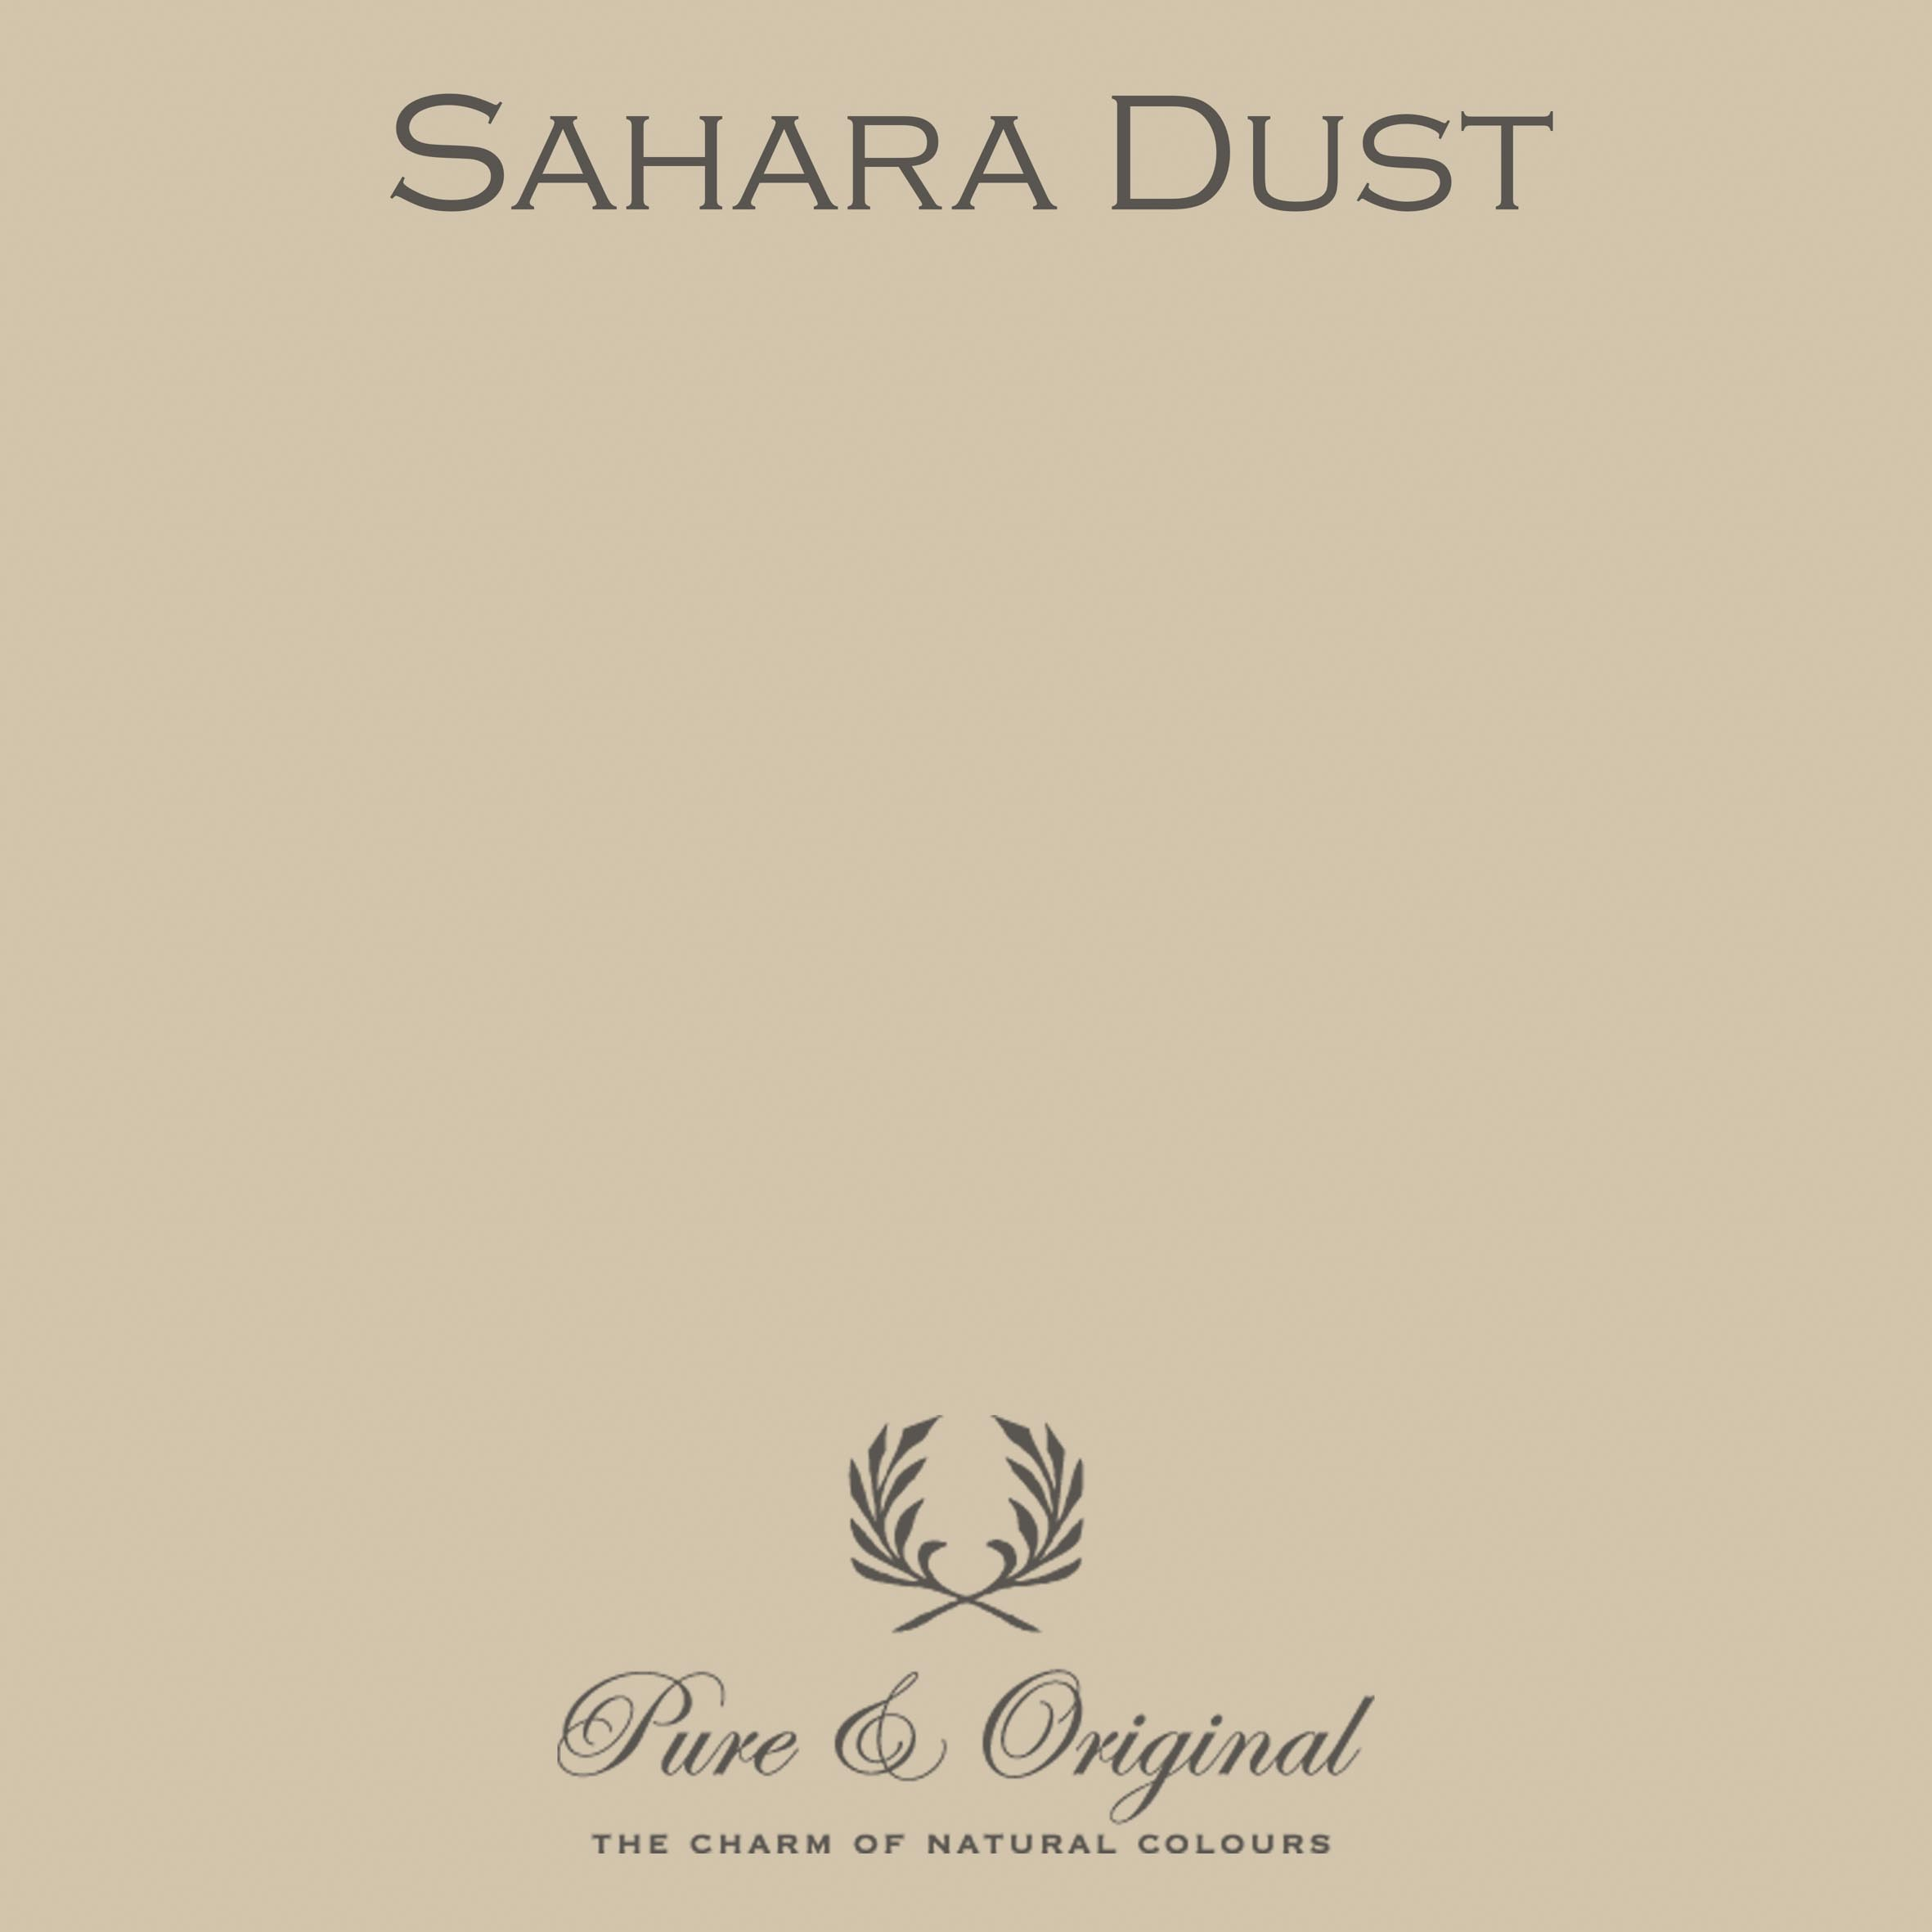 Pure & Original Sahara Dust